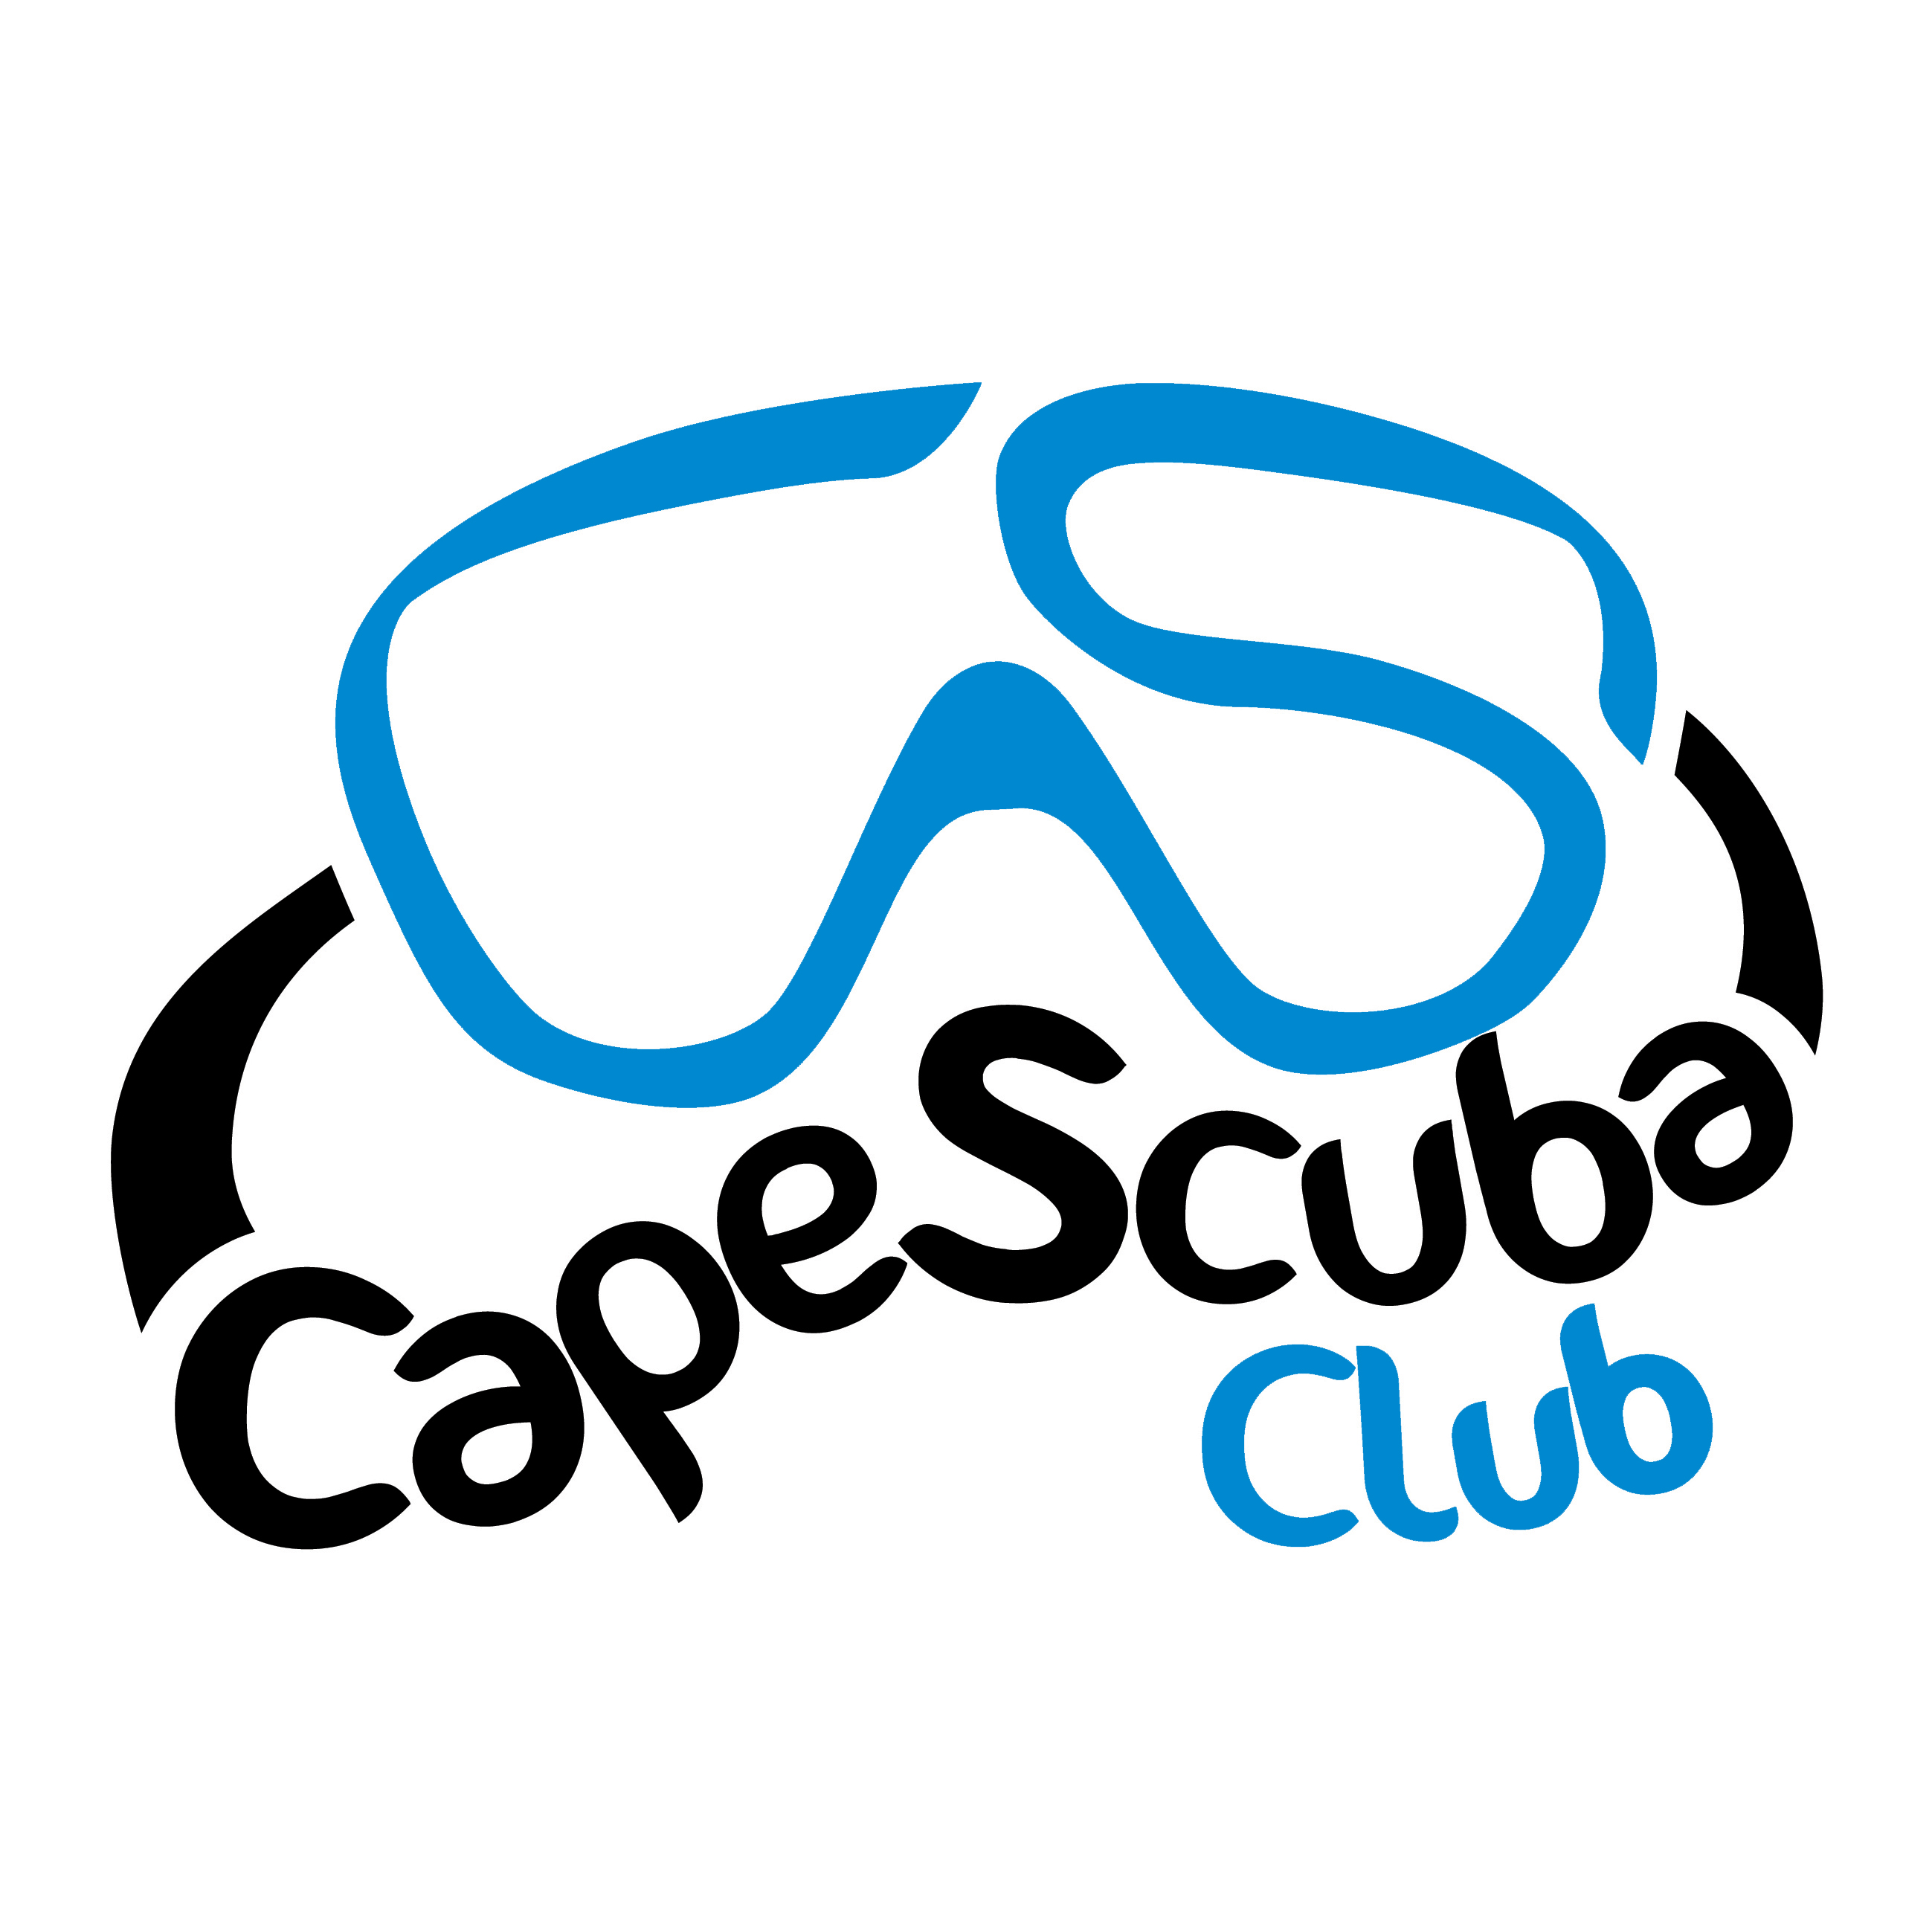 Scuba Dive Logos http://www.capescuba.co.za/cape-scuba-club-is-launched/